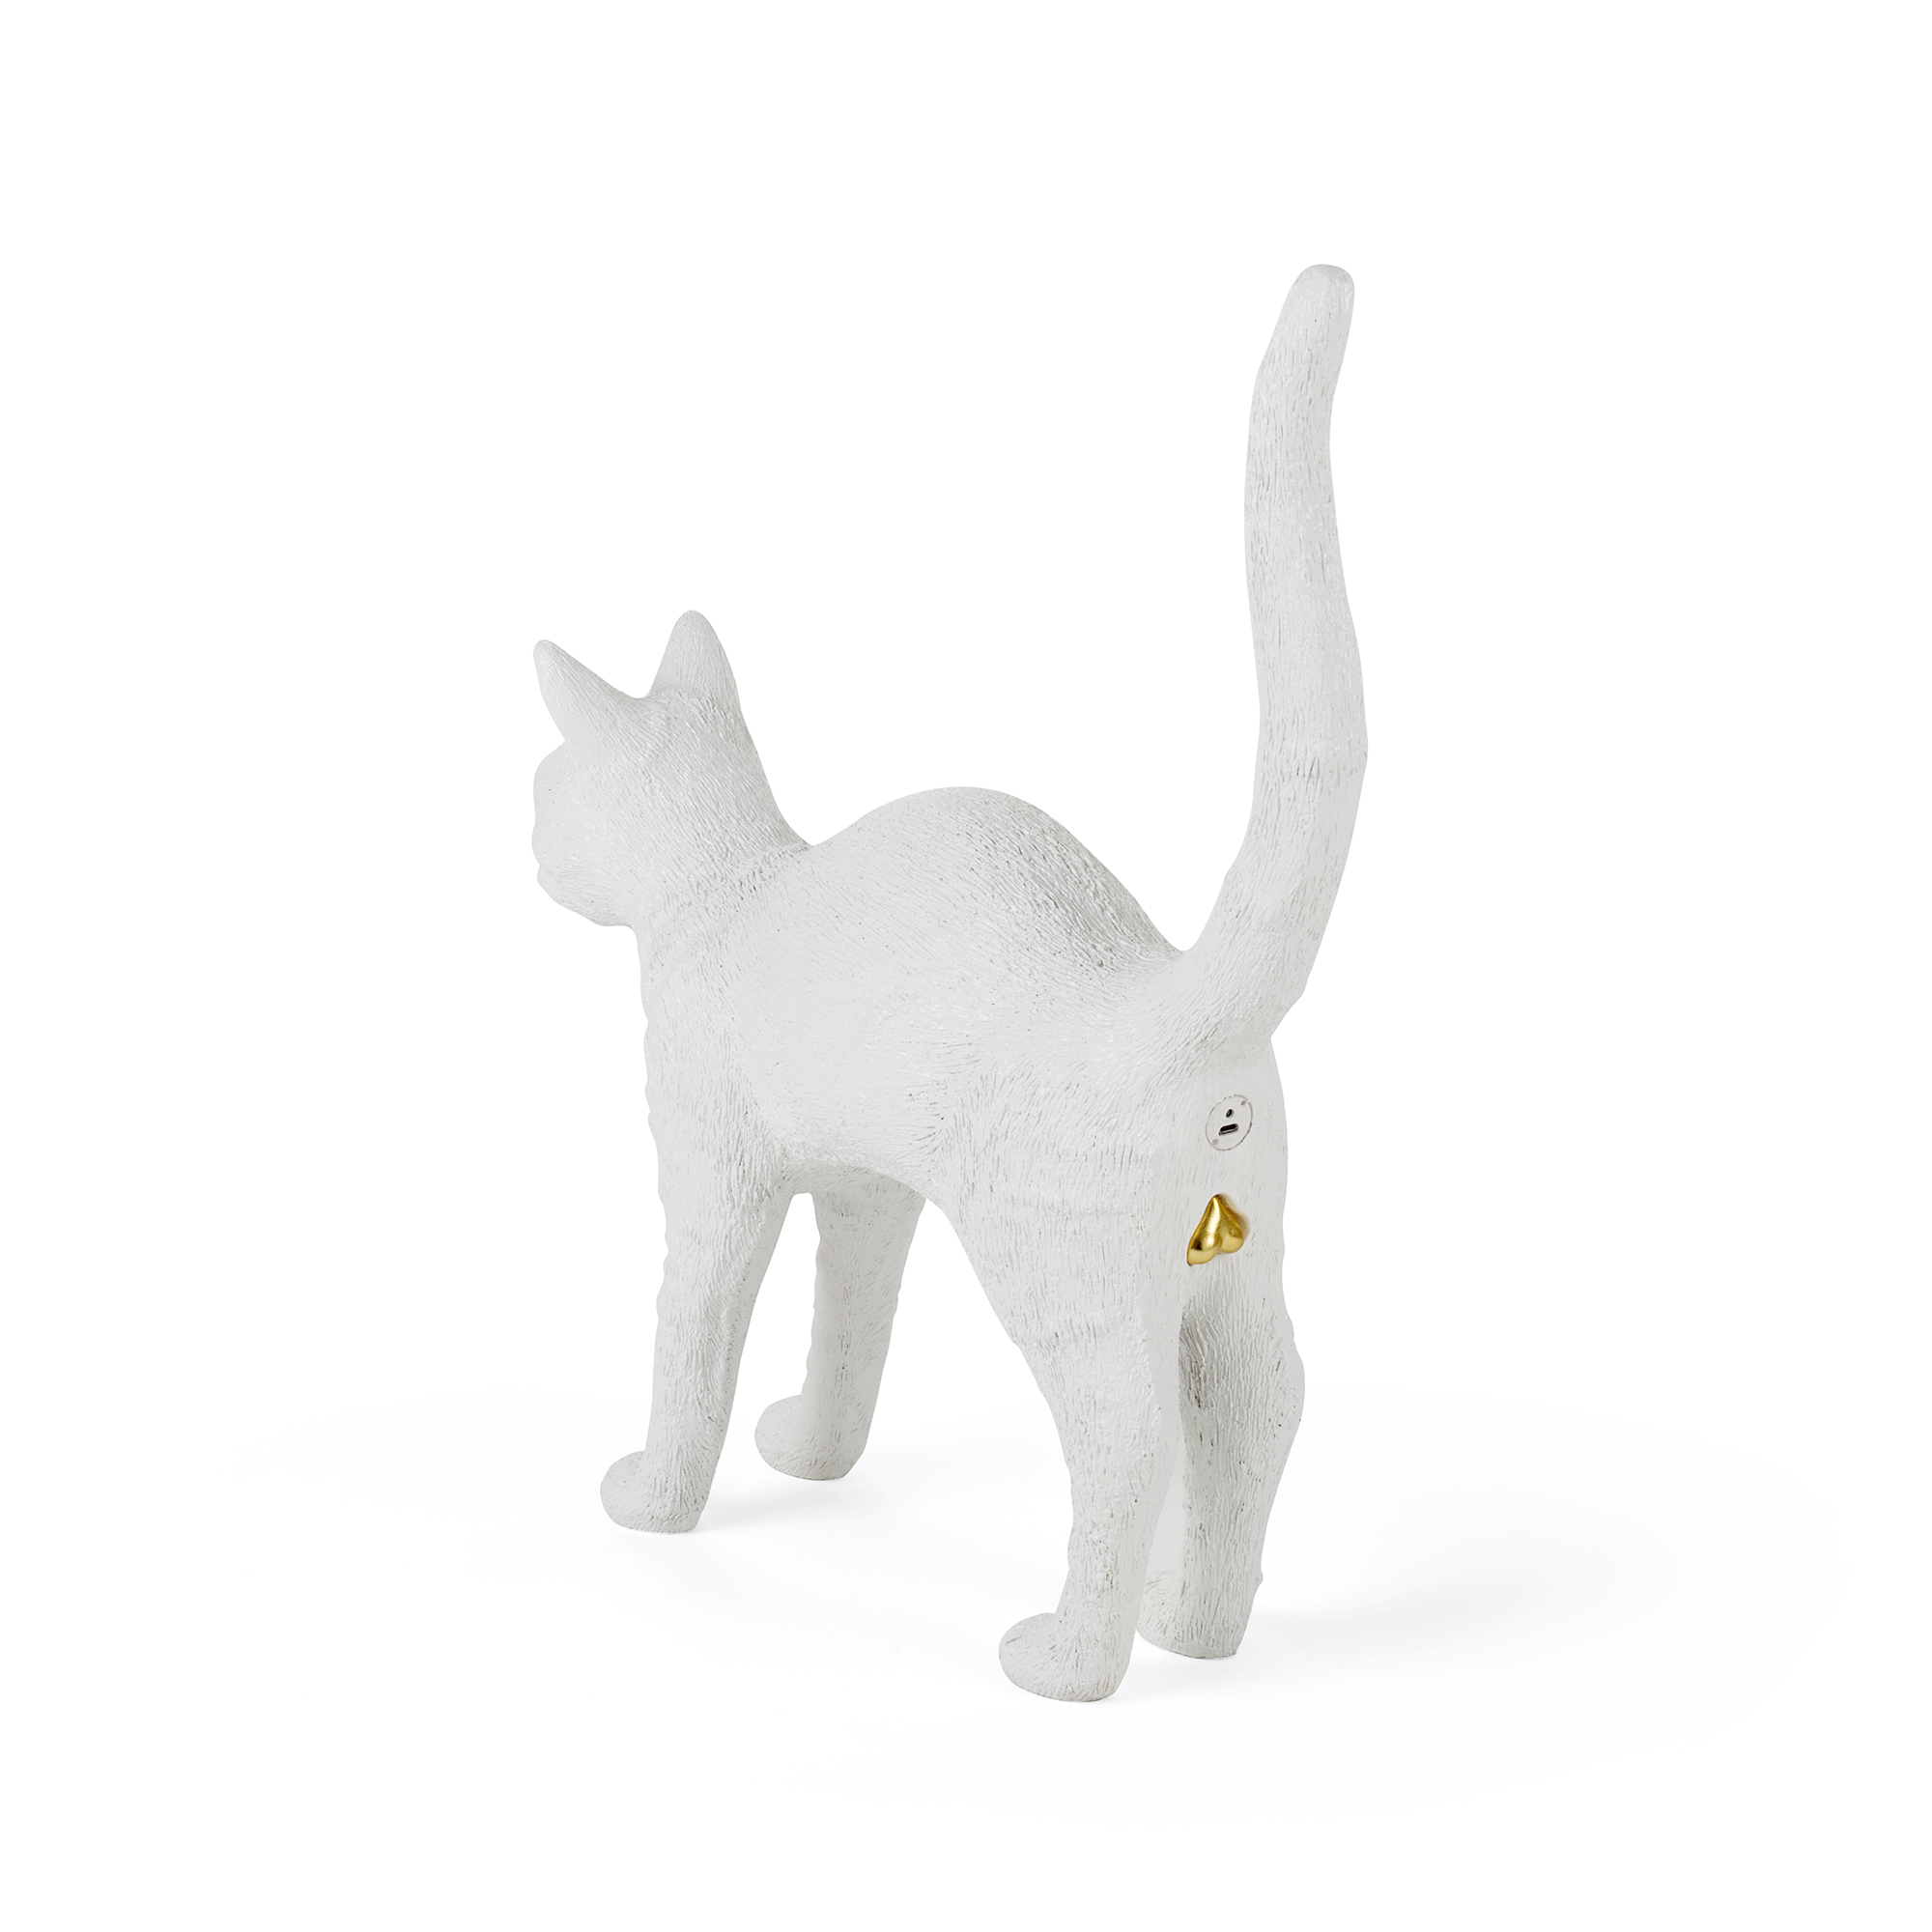 Lamp Seletti Jobby The Cat White Racurs 1